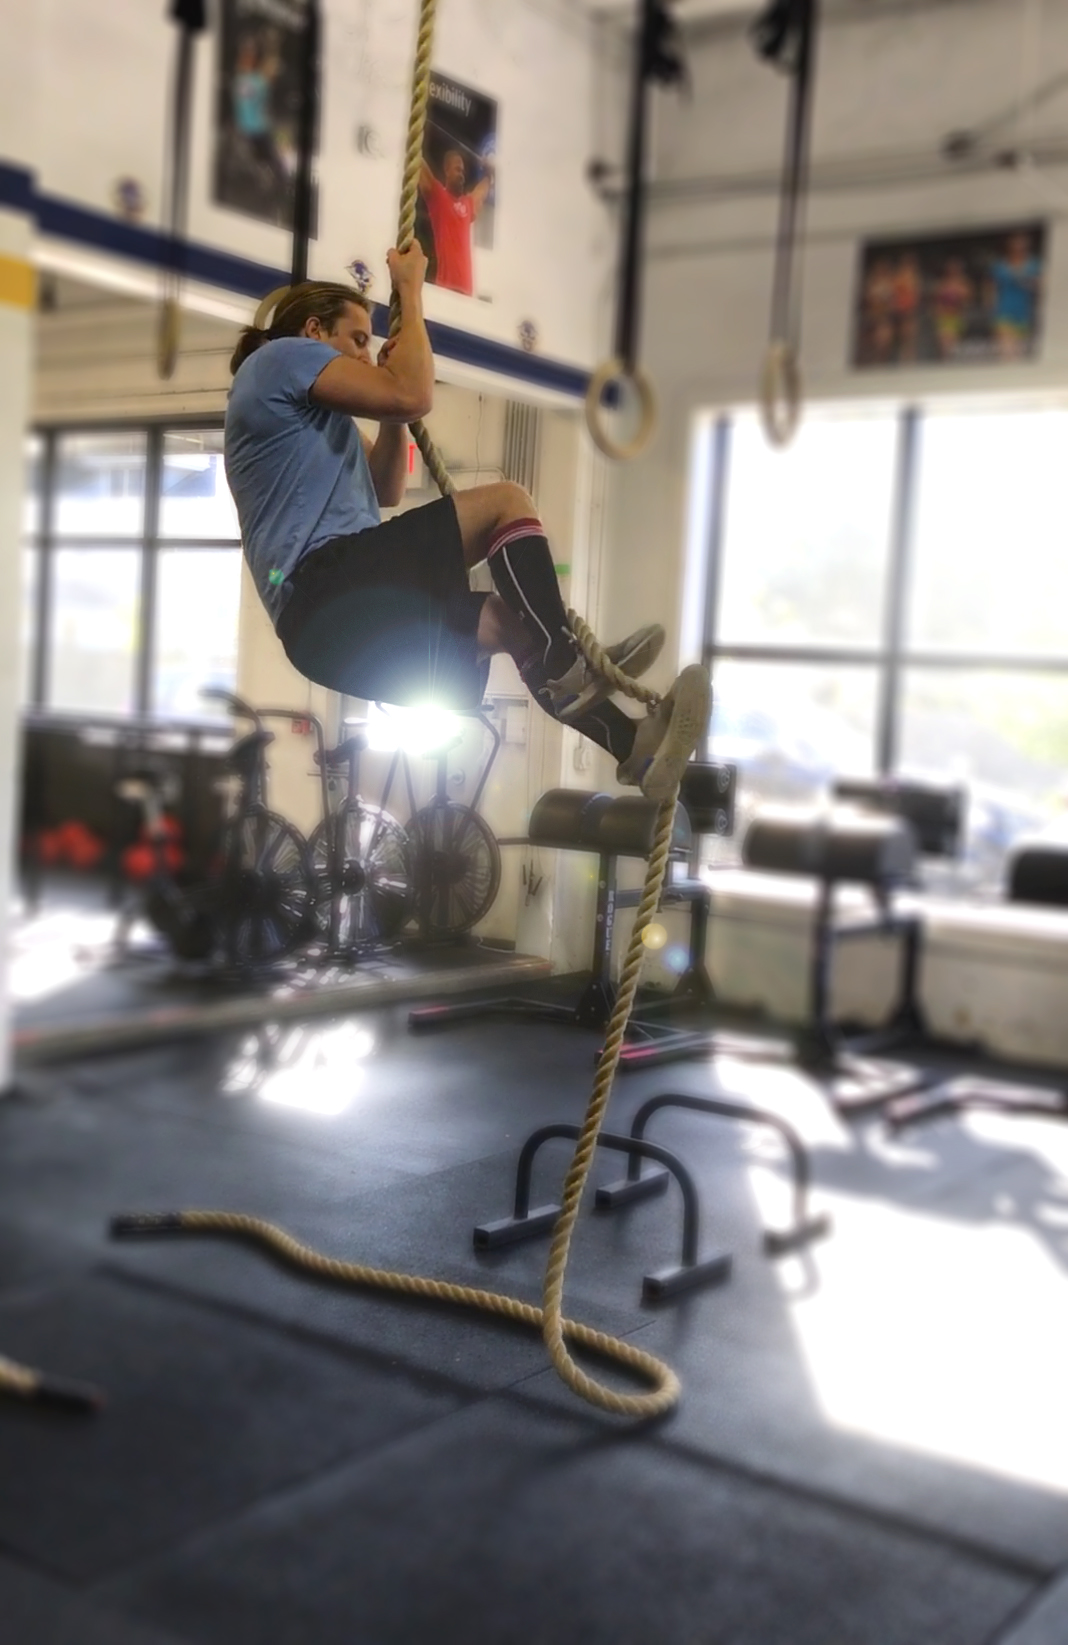 Congratulations to PVCF athlete, Joe Johnson on tackling the rope climbs! It's Joe's second month at Pioneer Valley CrossFit and he's already climbing to the ceiling ⭐